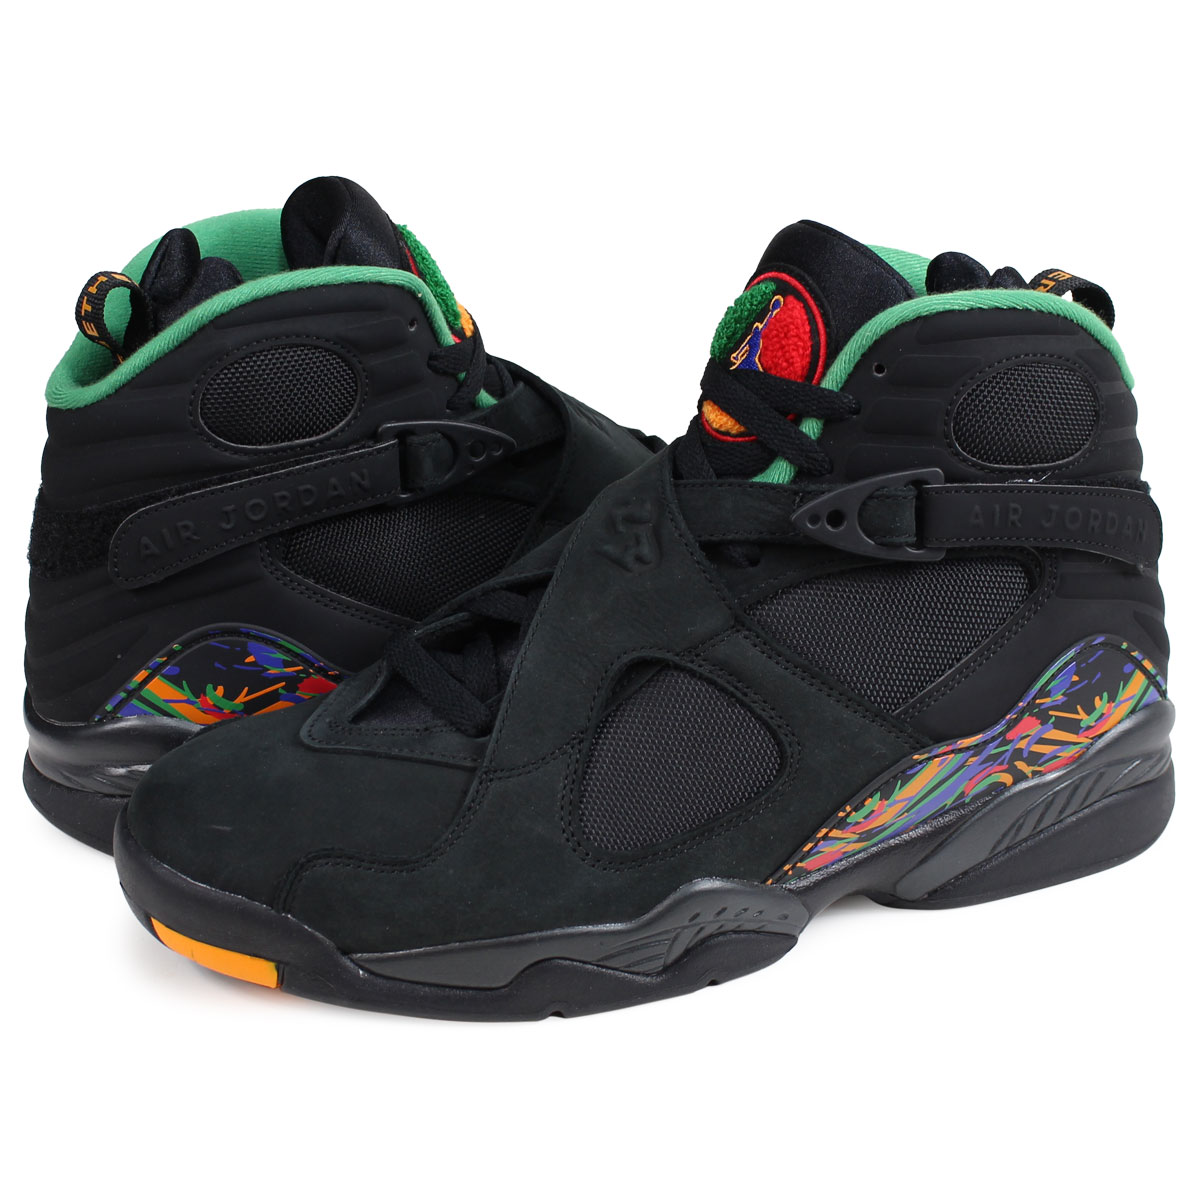 mieux aimé f64cc 06b07 Nike NIKE Air Jordan 8 nostalgic sneakers men AIR JORDAN 8 RETRO  305,381-004 black